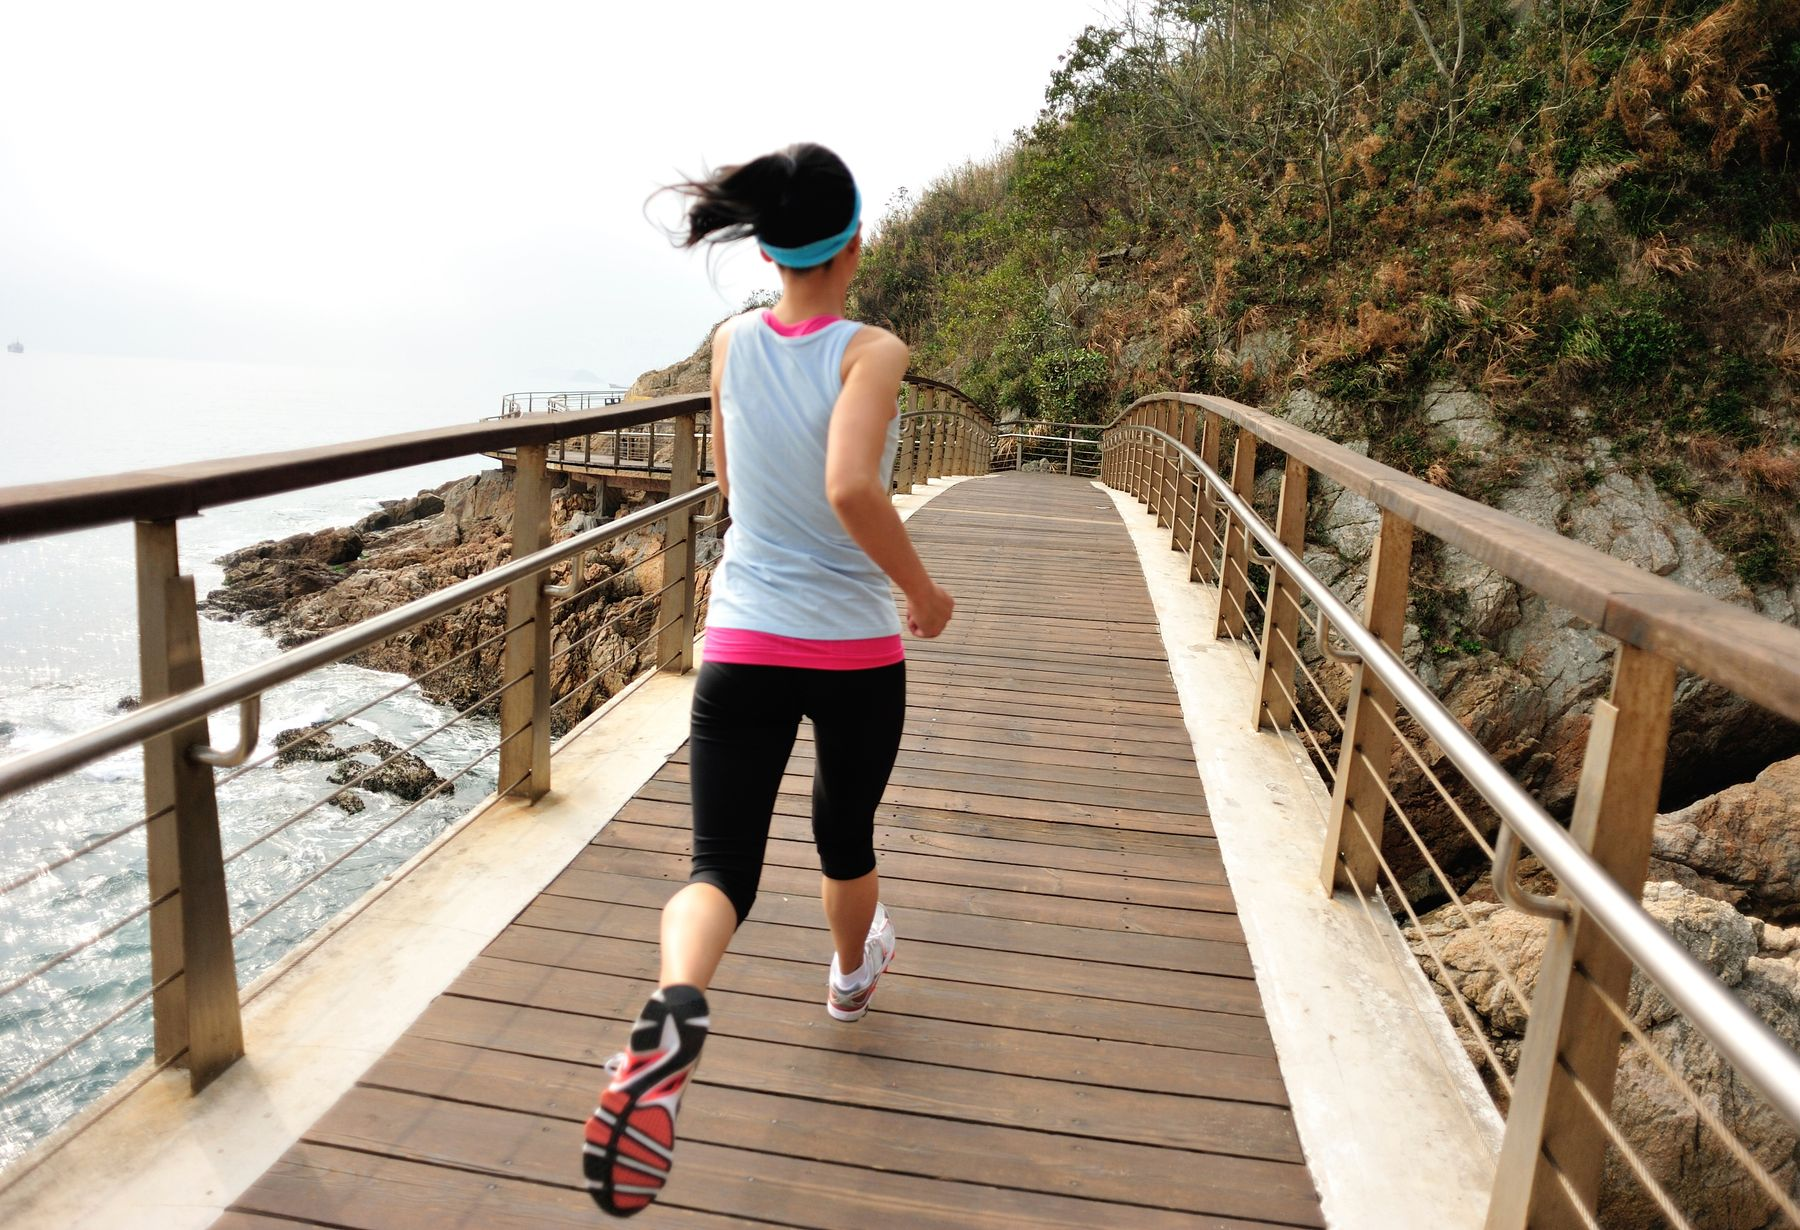 Health retreats can include exercise, diet and lifestyle advice